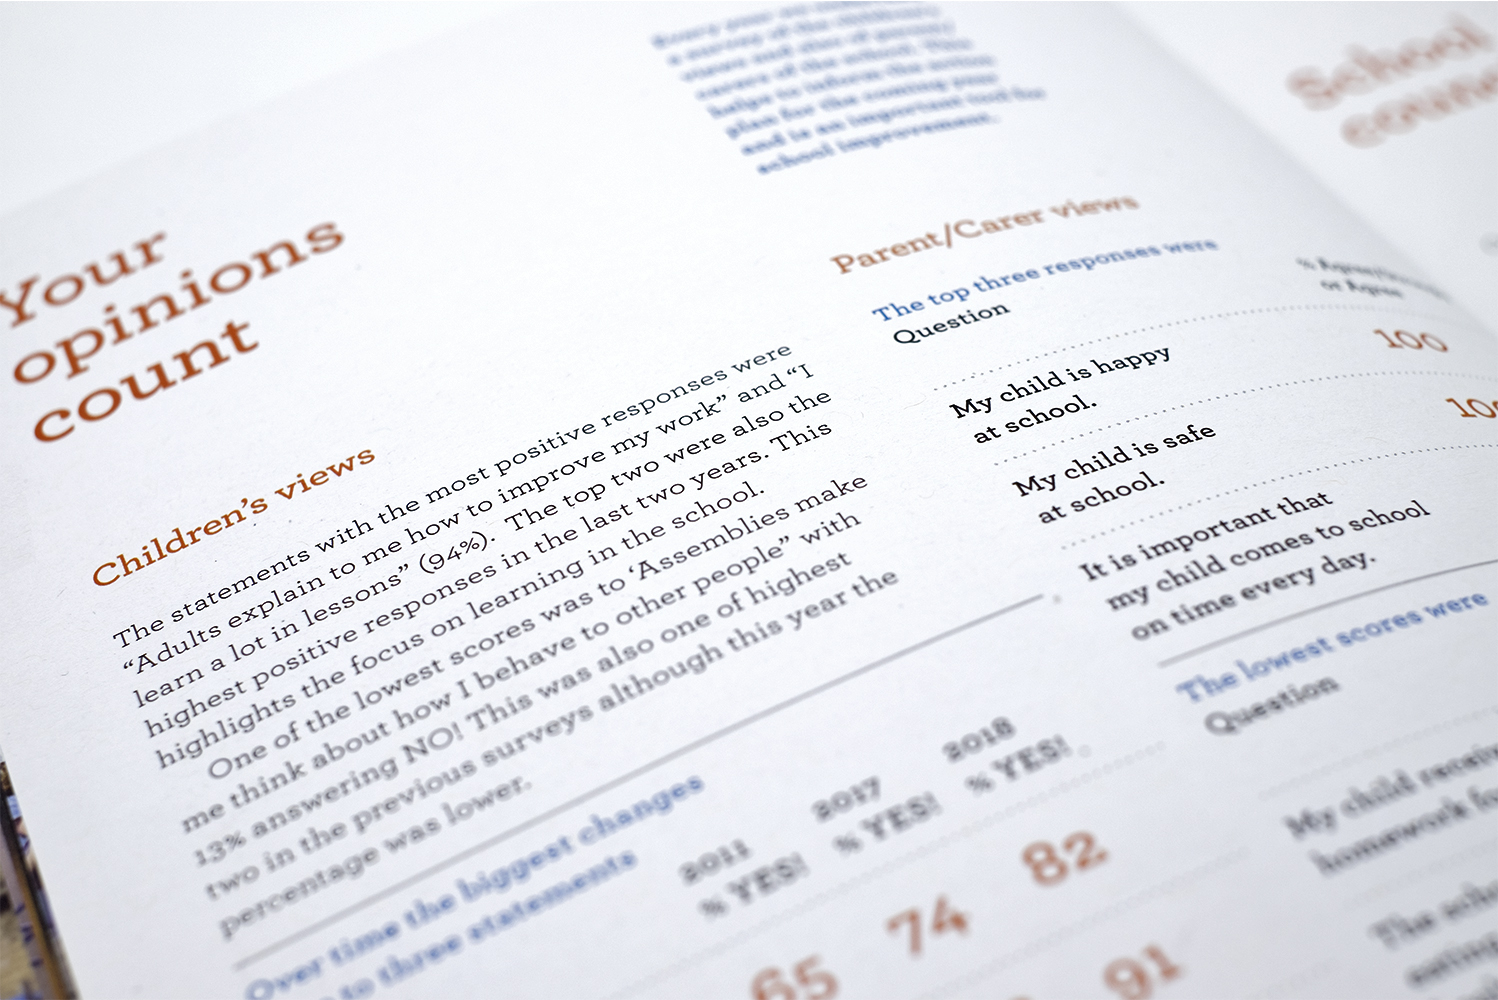 Goodrich_18_Prospectus_opinions_closeup.jpg